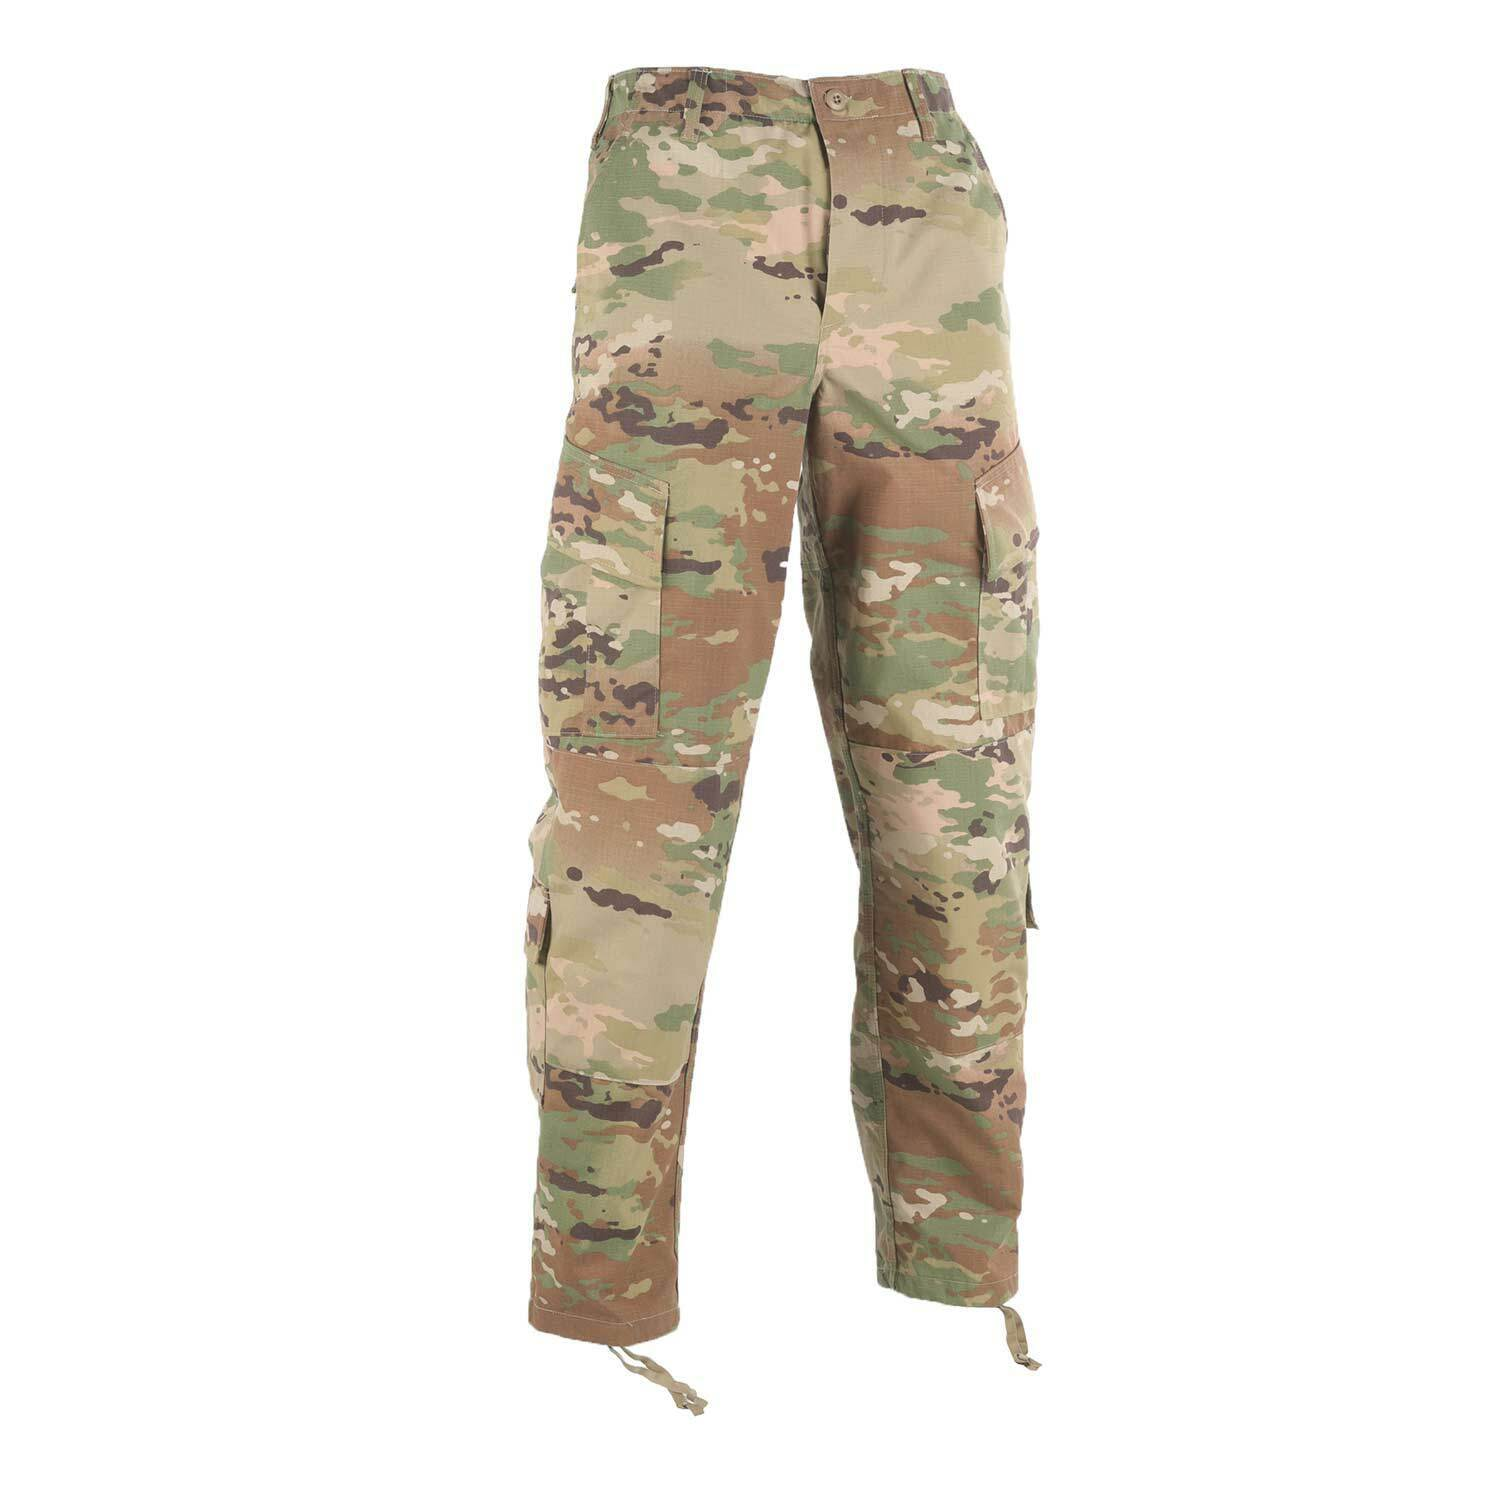 Tru-Spec Scorpion OCP  (GL PD 14-05) Army Combat Uniform Pants 50 50 NYCO RS  be in great demand